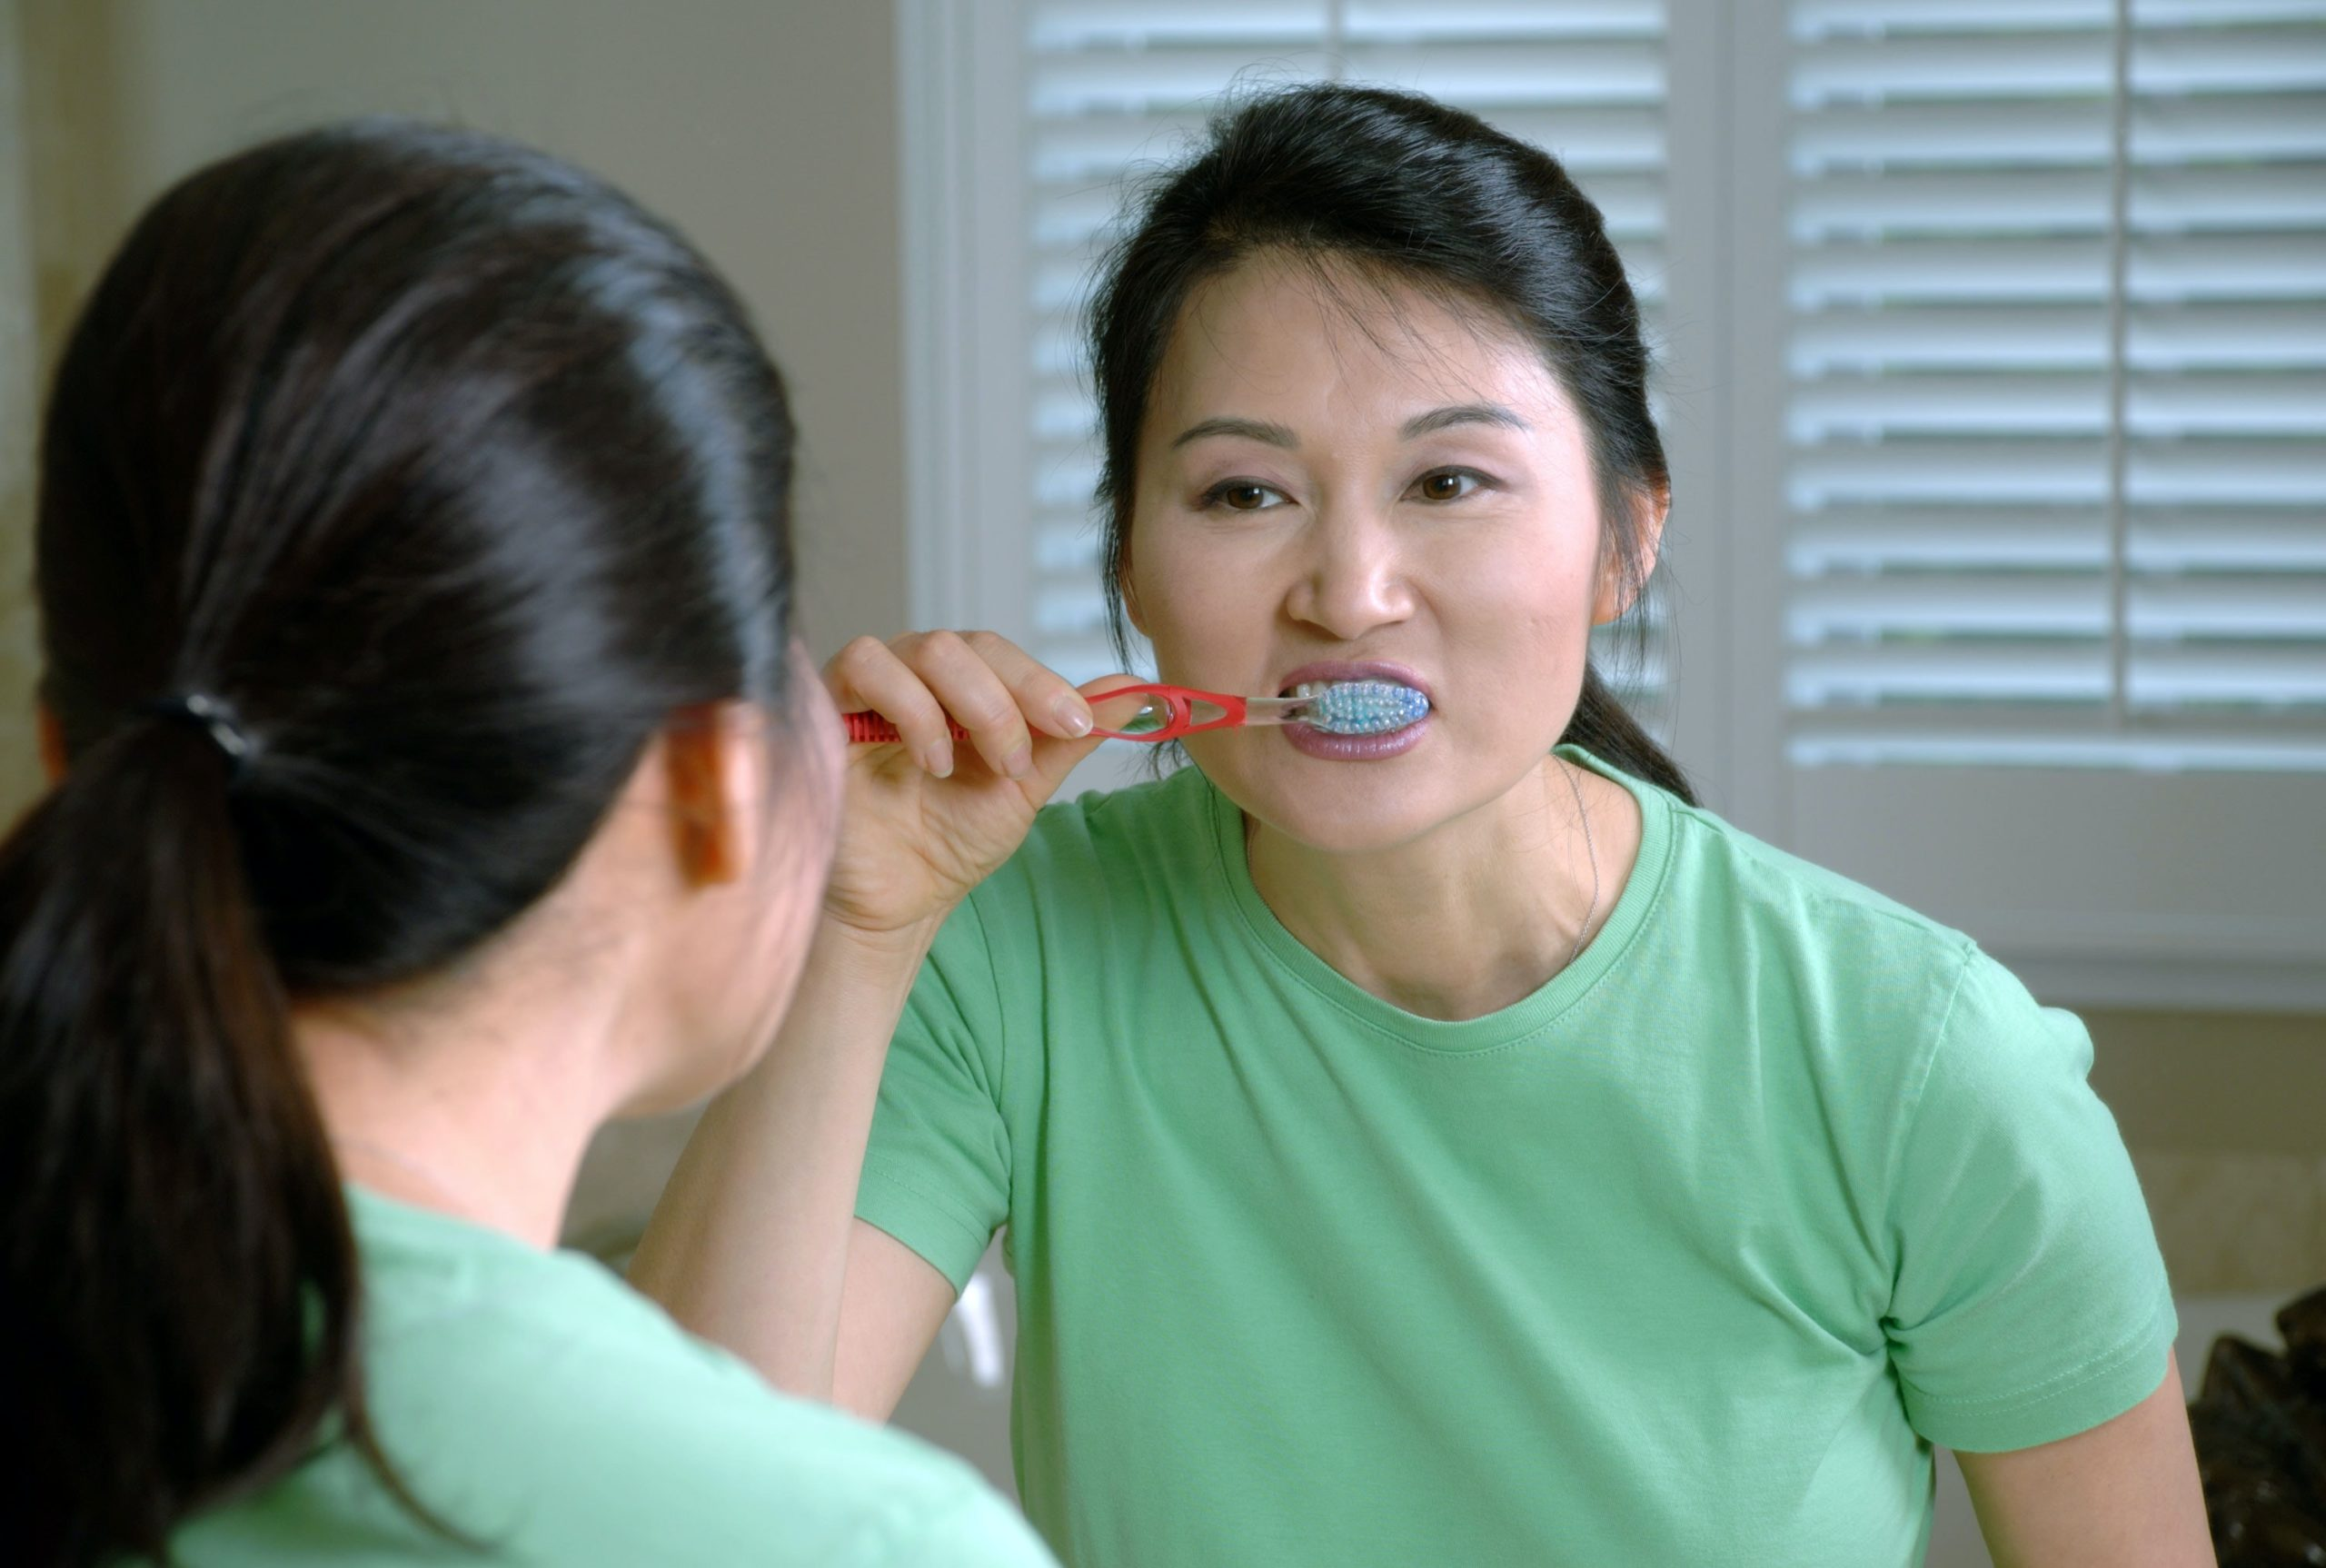 oral health during pandemic